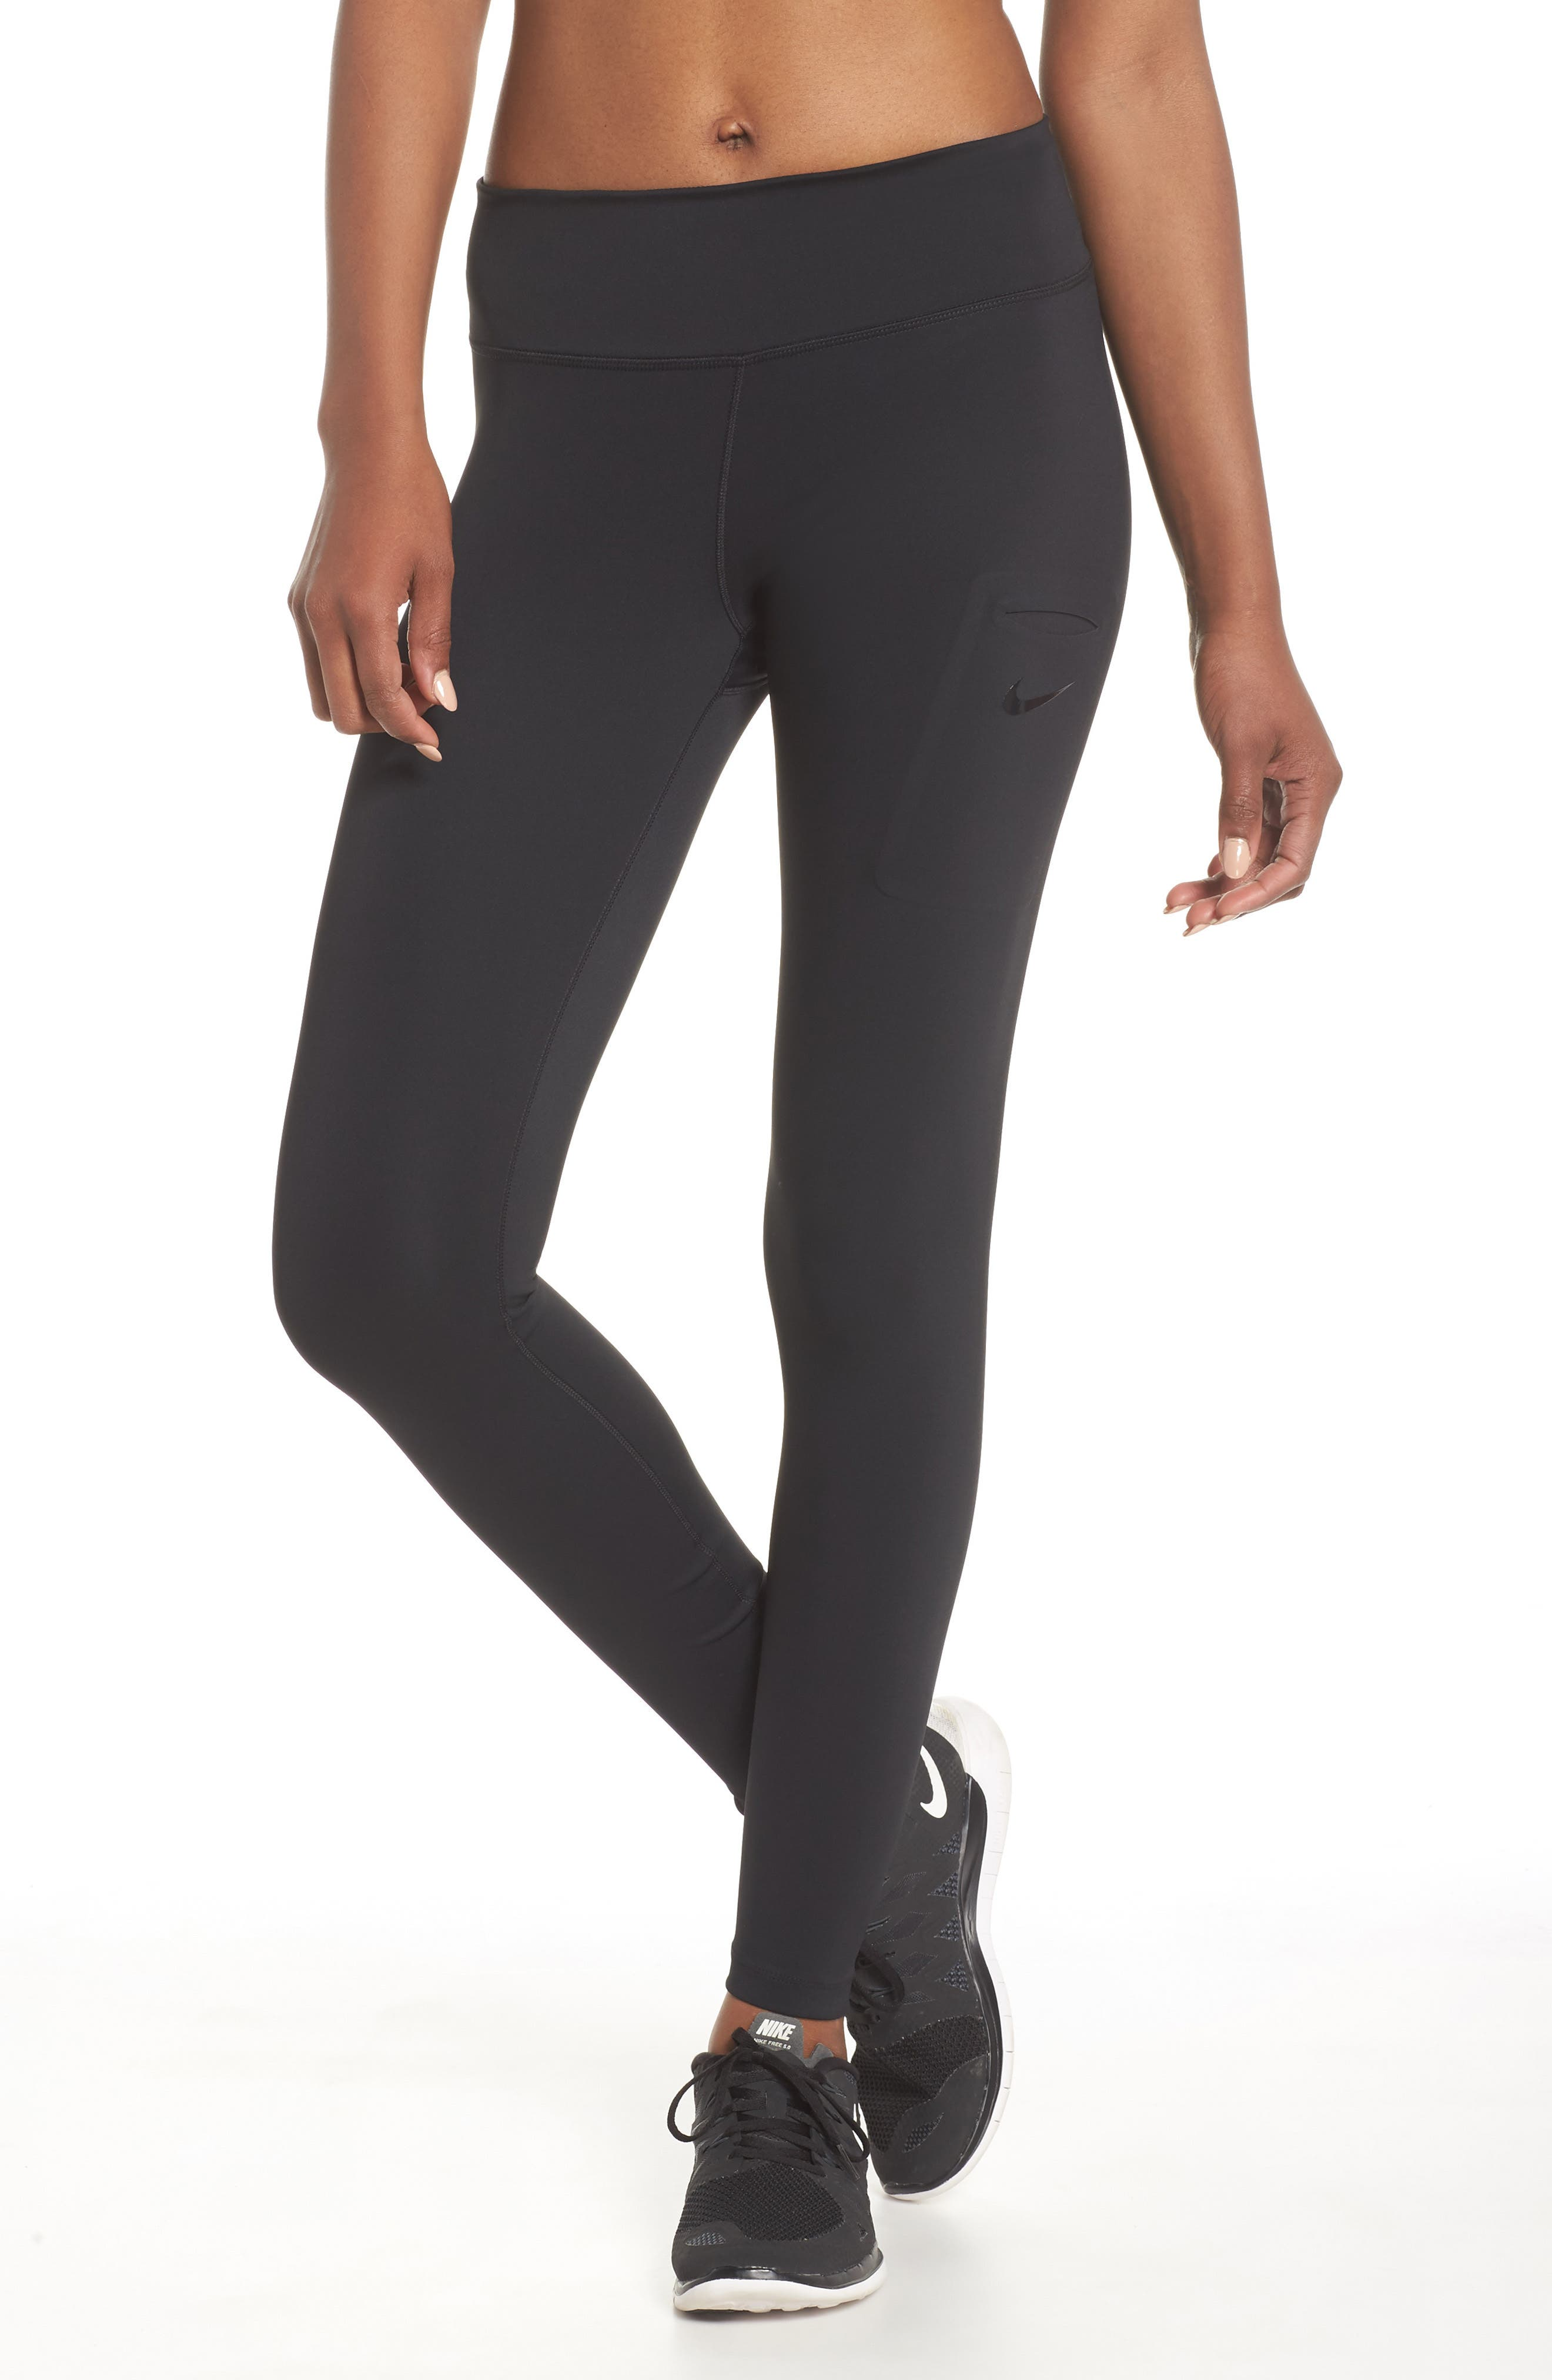 Power Tights,                             Main thumbnail 1, color,                             BLACK/ CLEAR